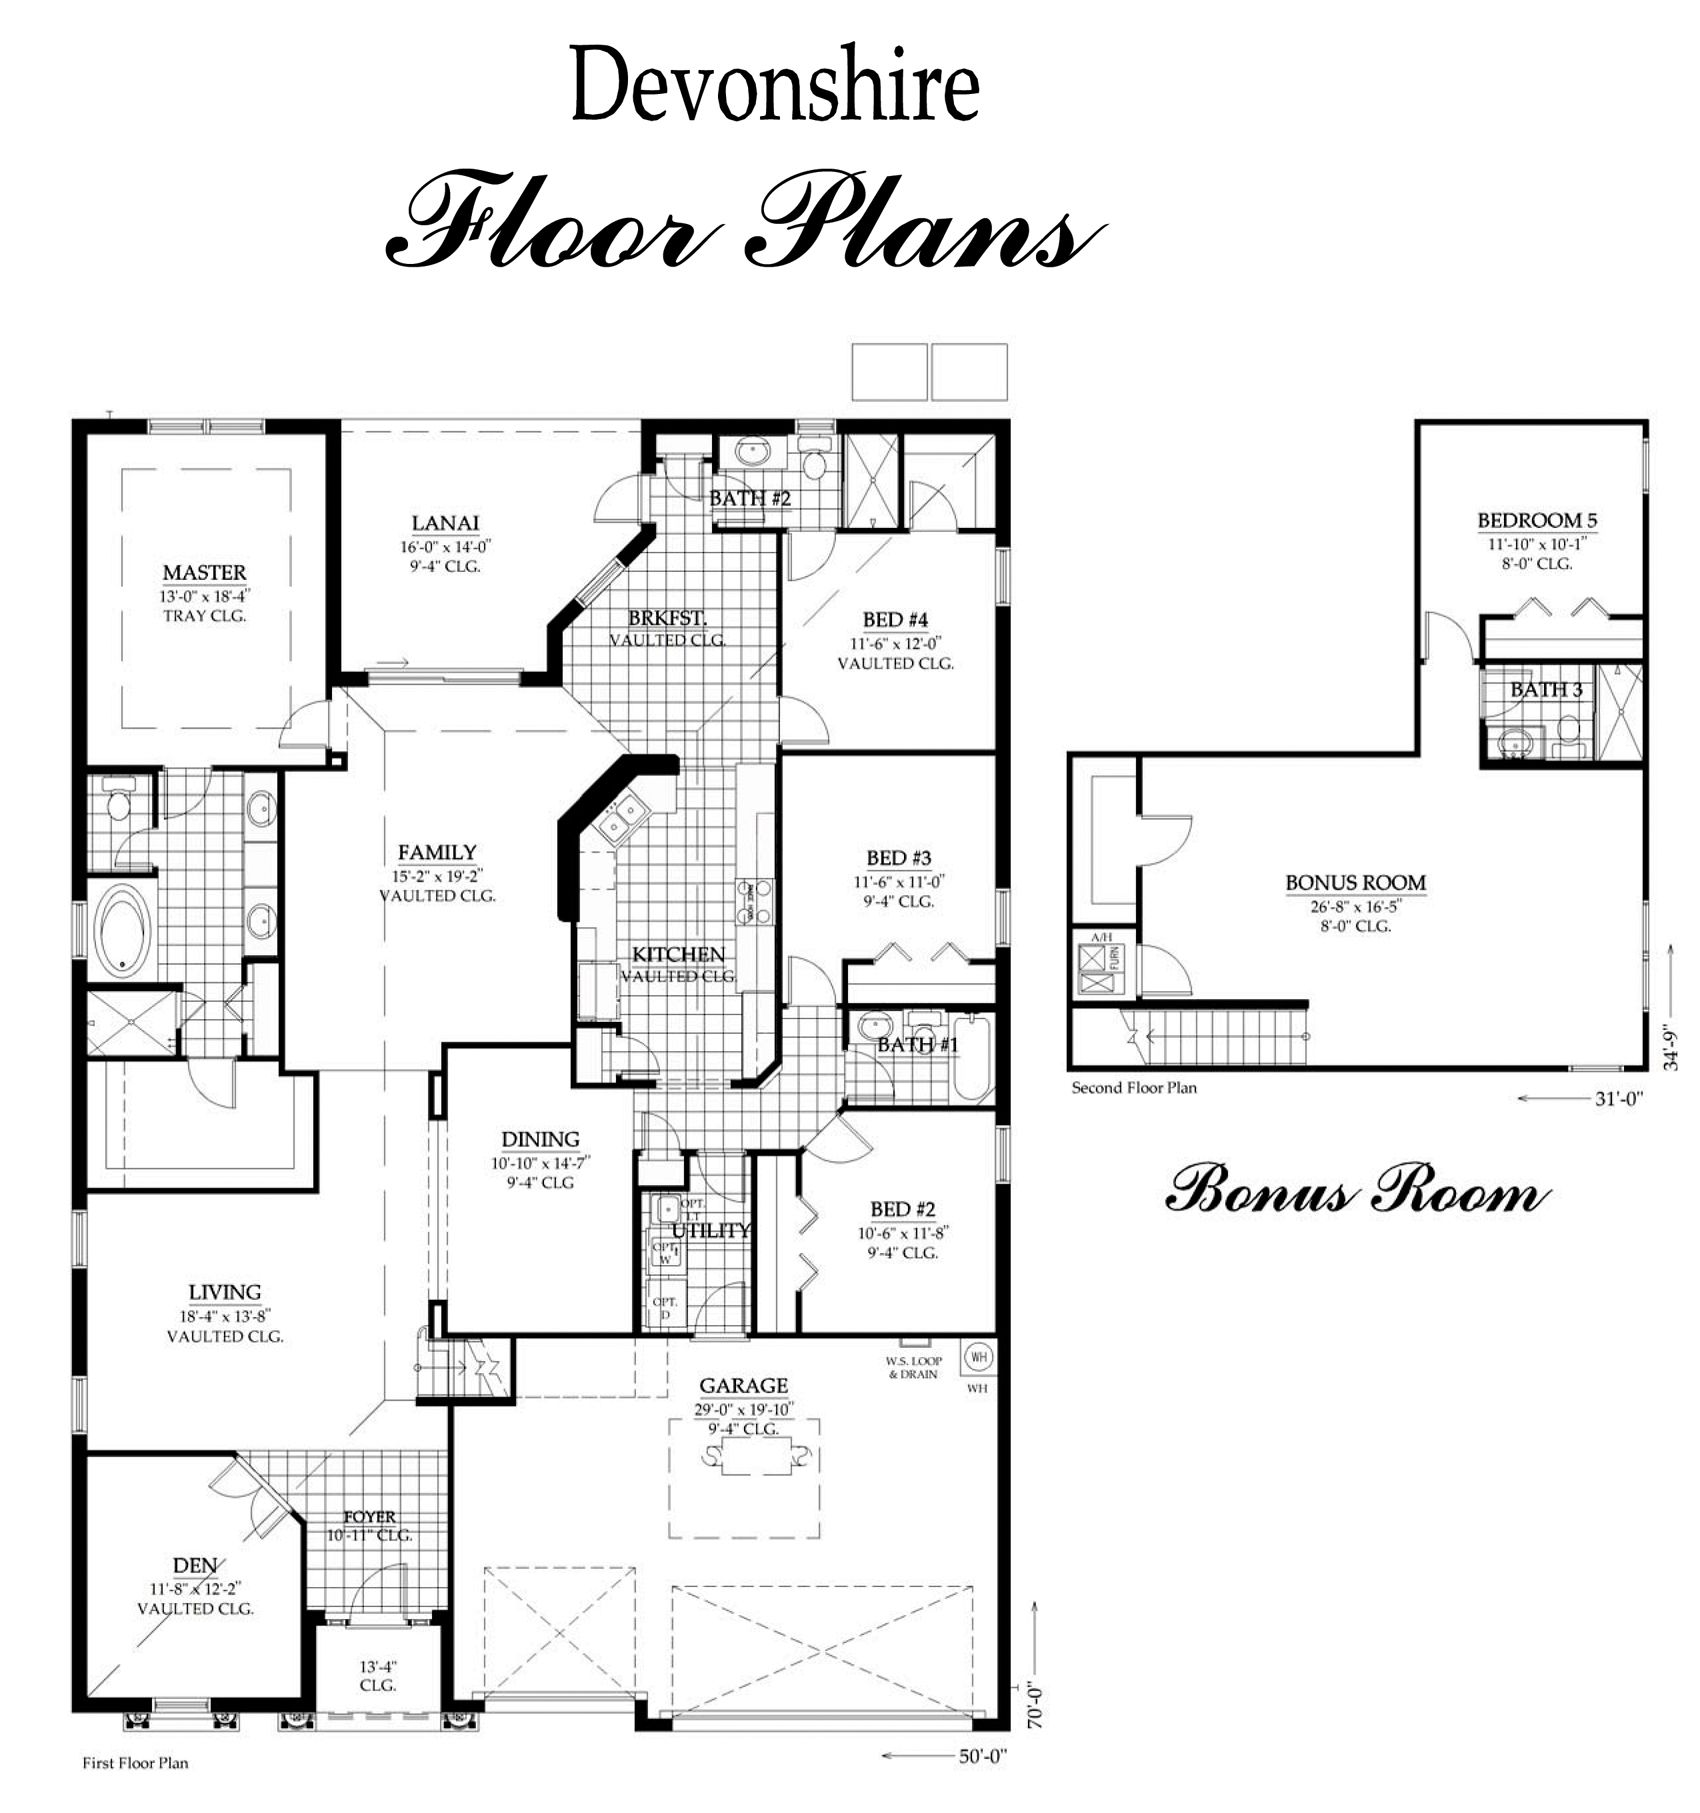 wiring diagram database  the devonshire with bonus room is a lot of home  for the